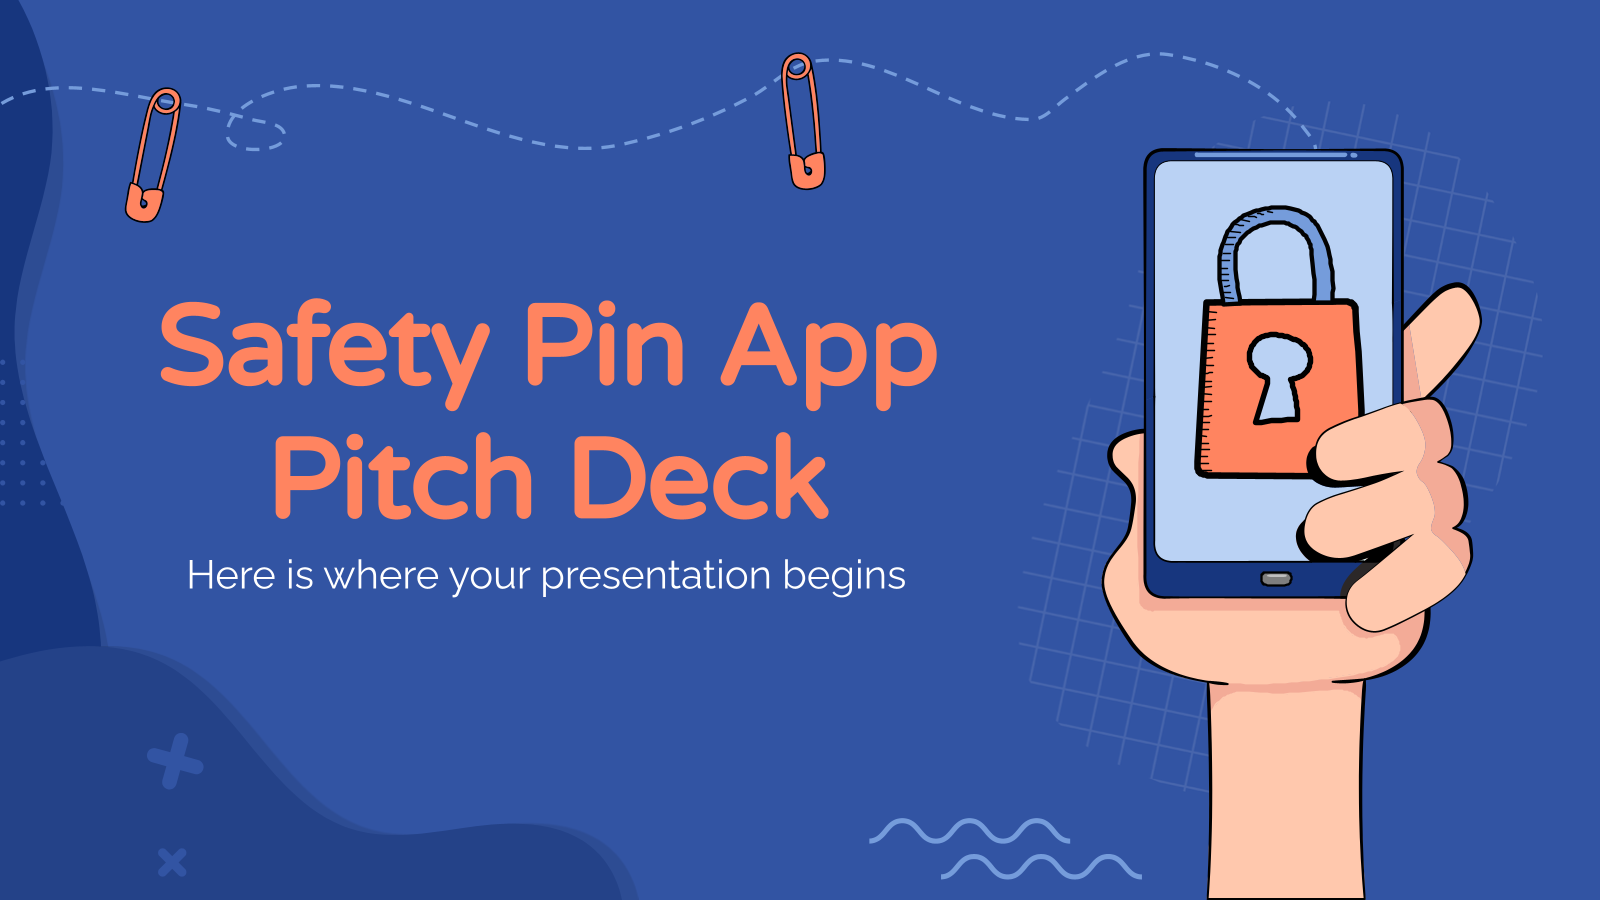 Safety Pin App Pitch Deck presentation template